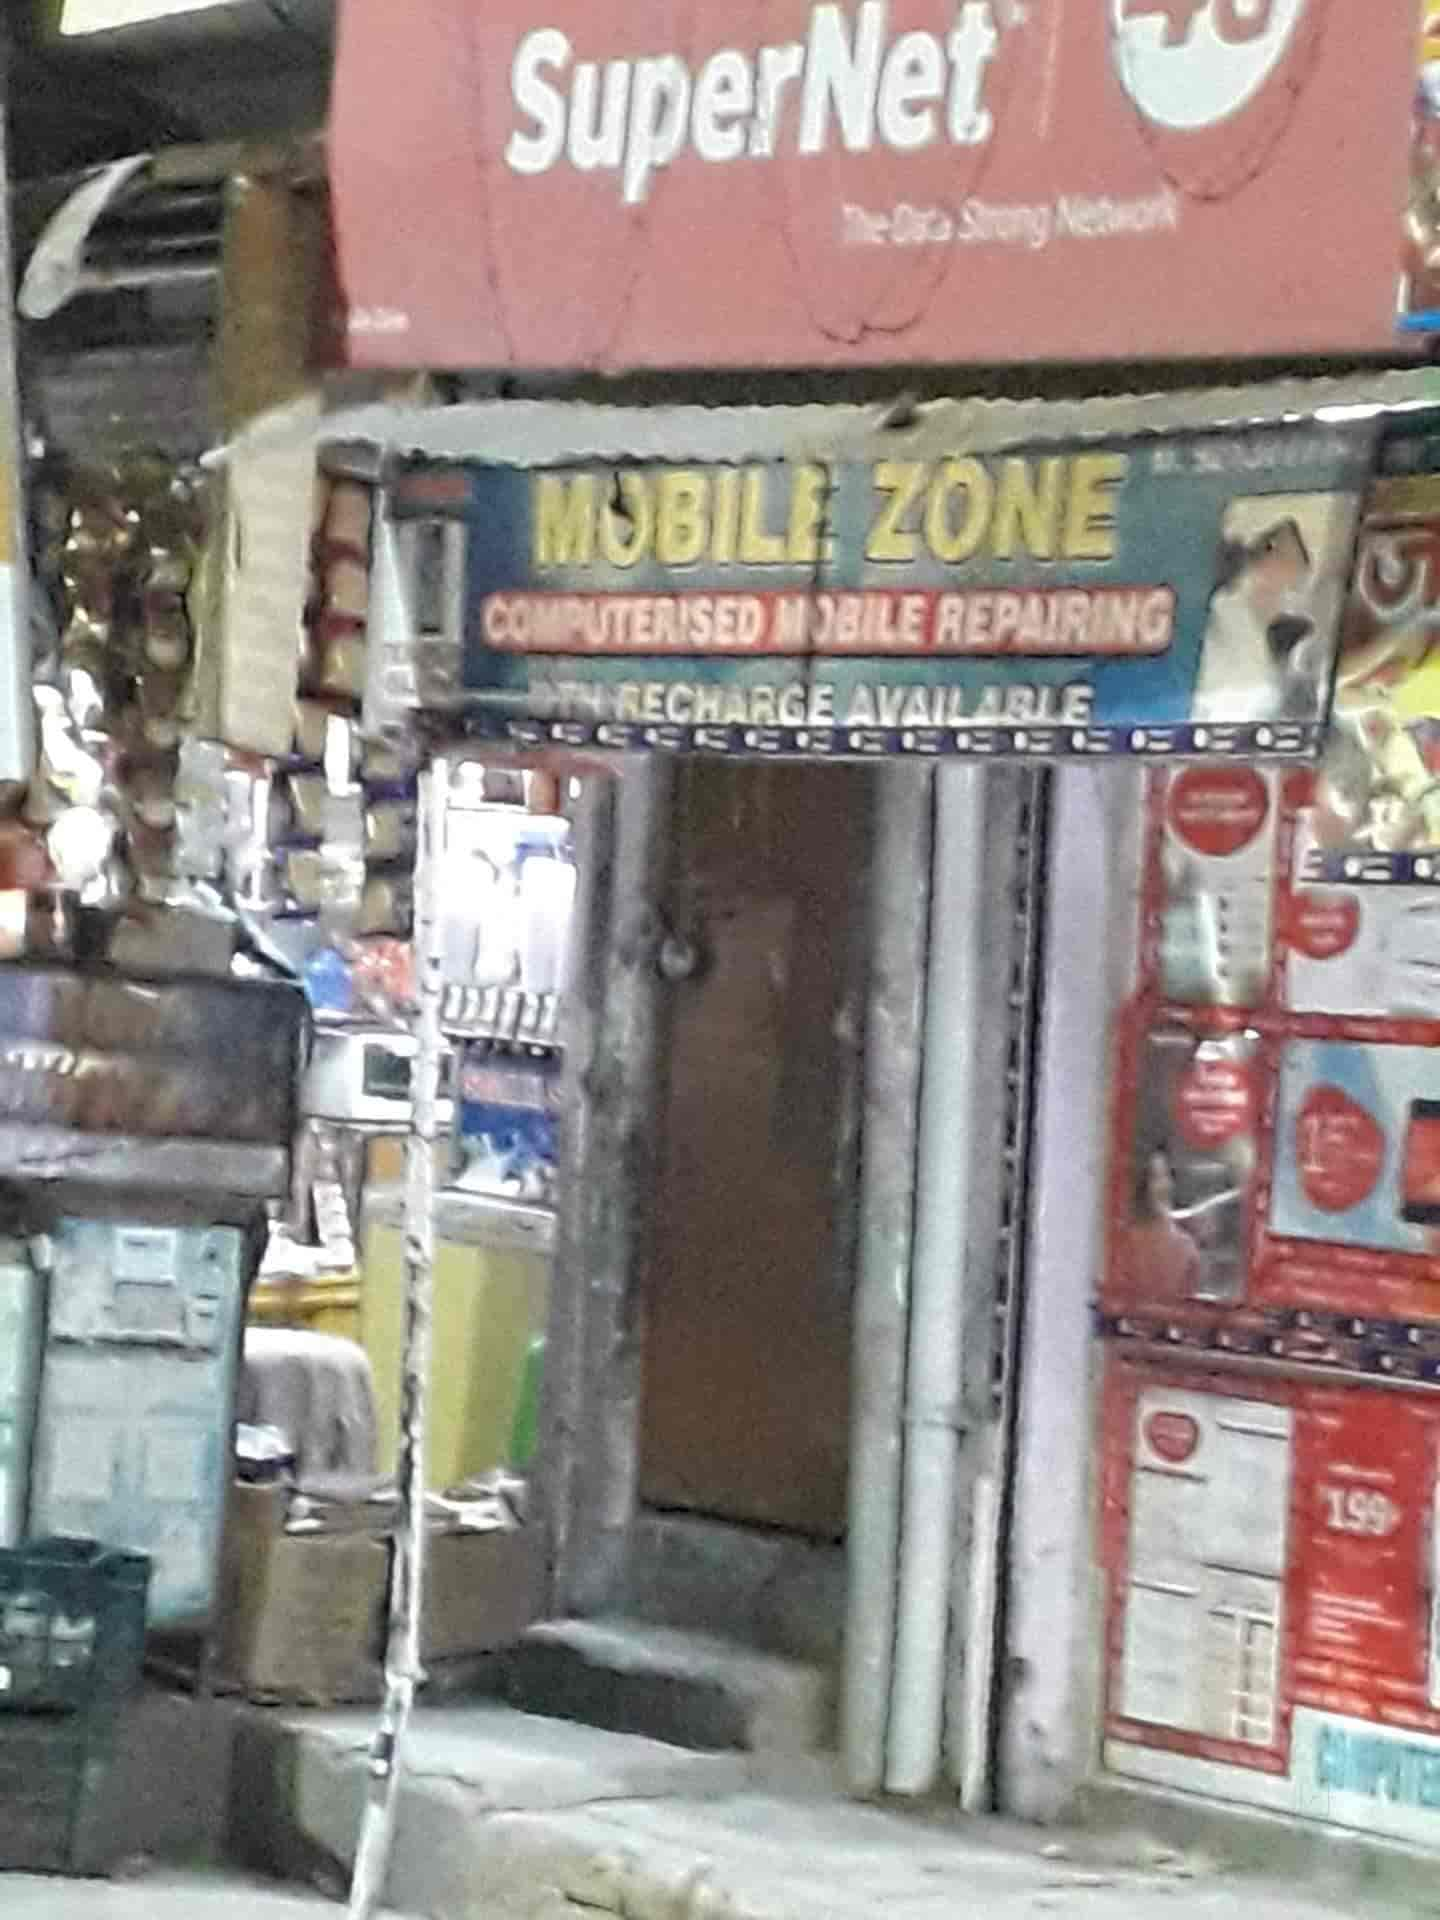 Mobili Zone Mobile Zone Photos Rohini Sector 1 Delhi Pictures Images